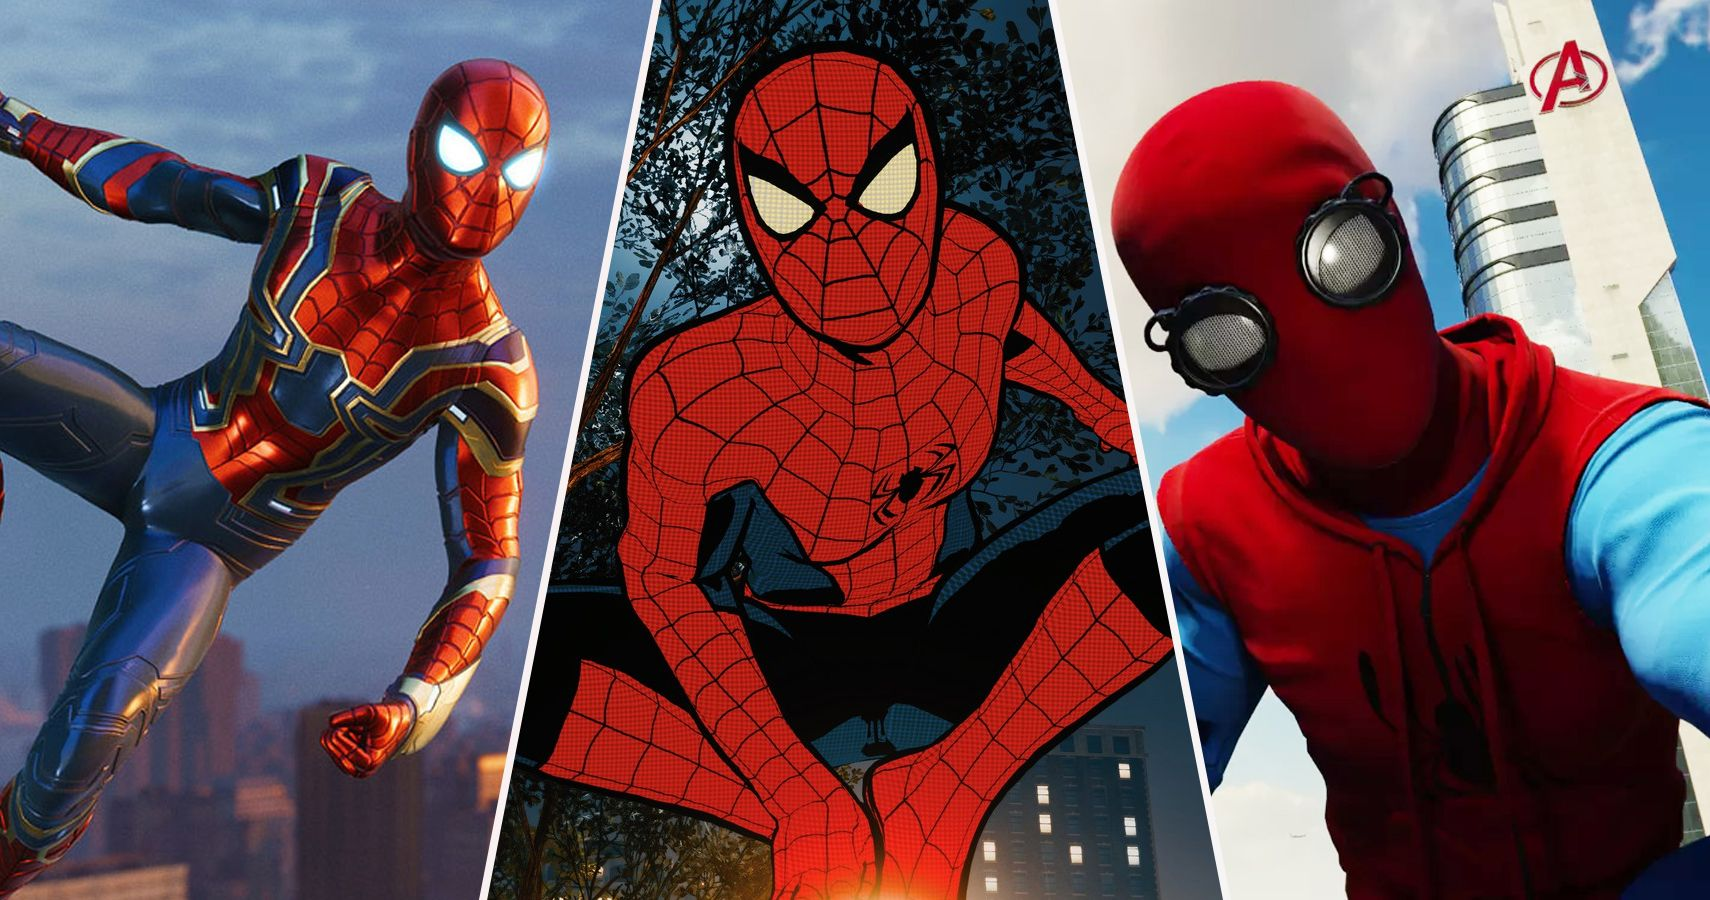 646accdd4a Spider-Man PS4: All Costumes, Ranked Worst To Best | TheGamer